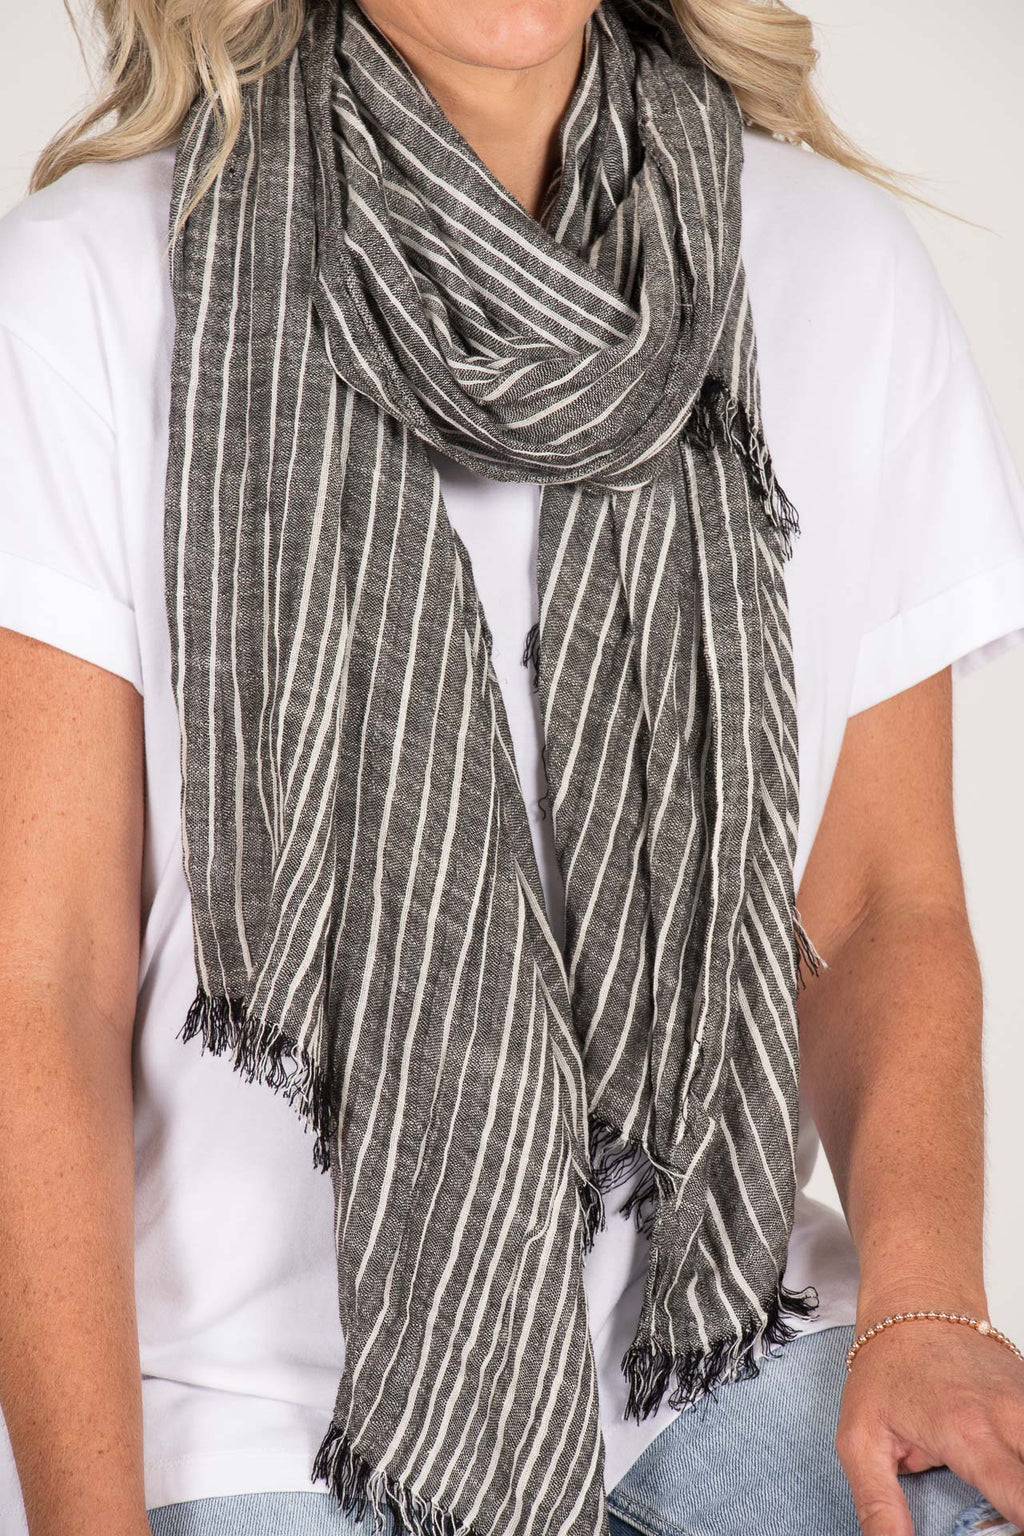 Andora Scarf in Charcoal